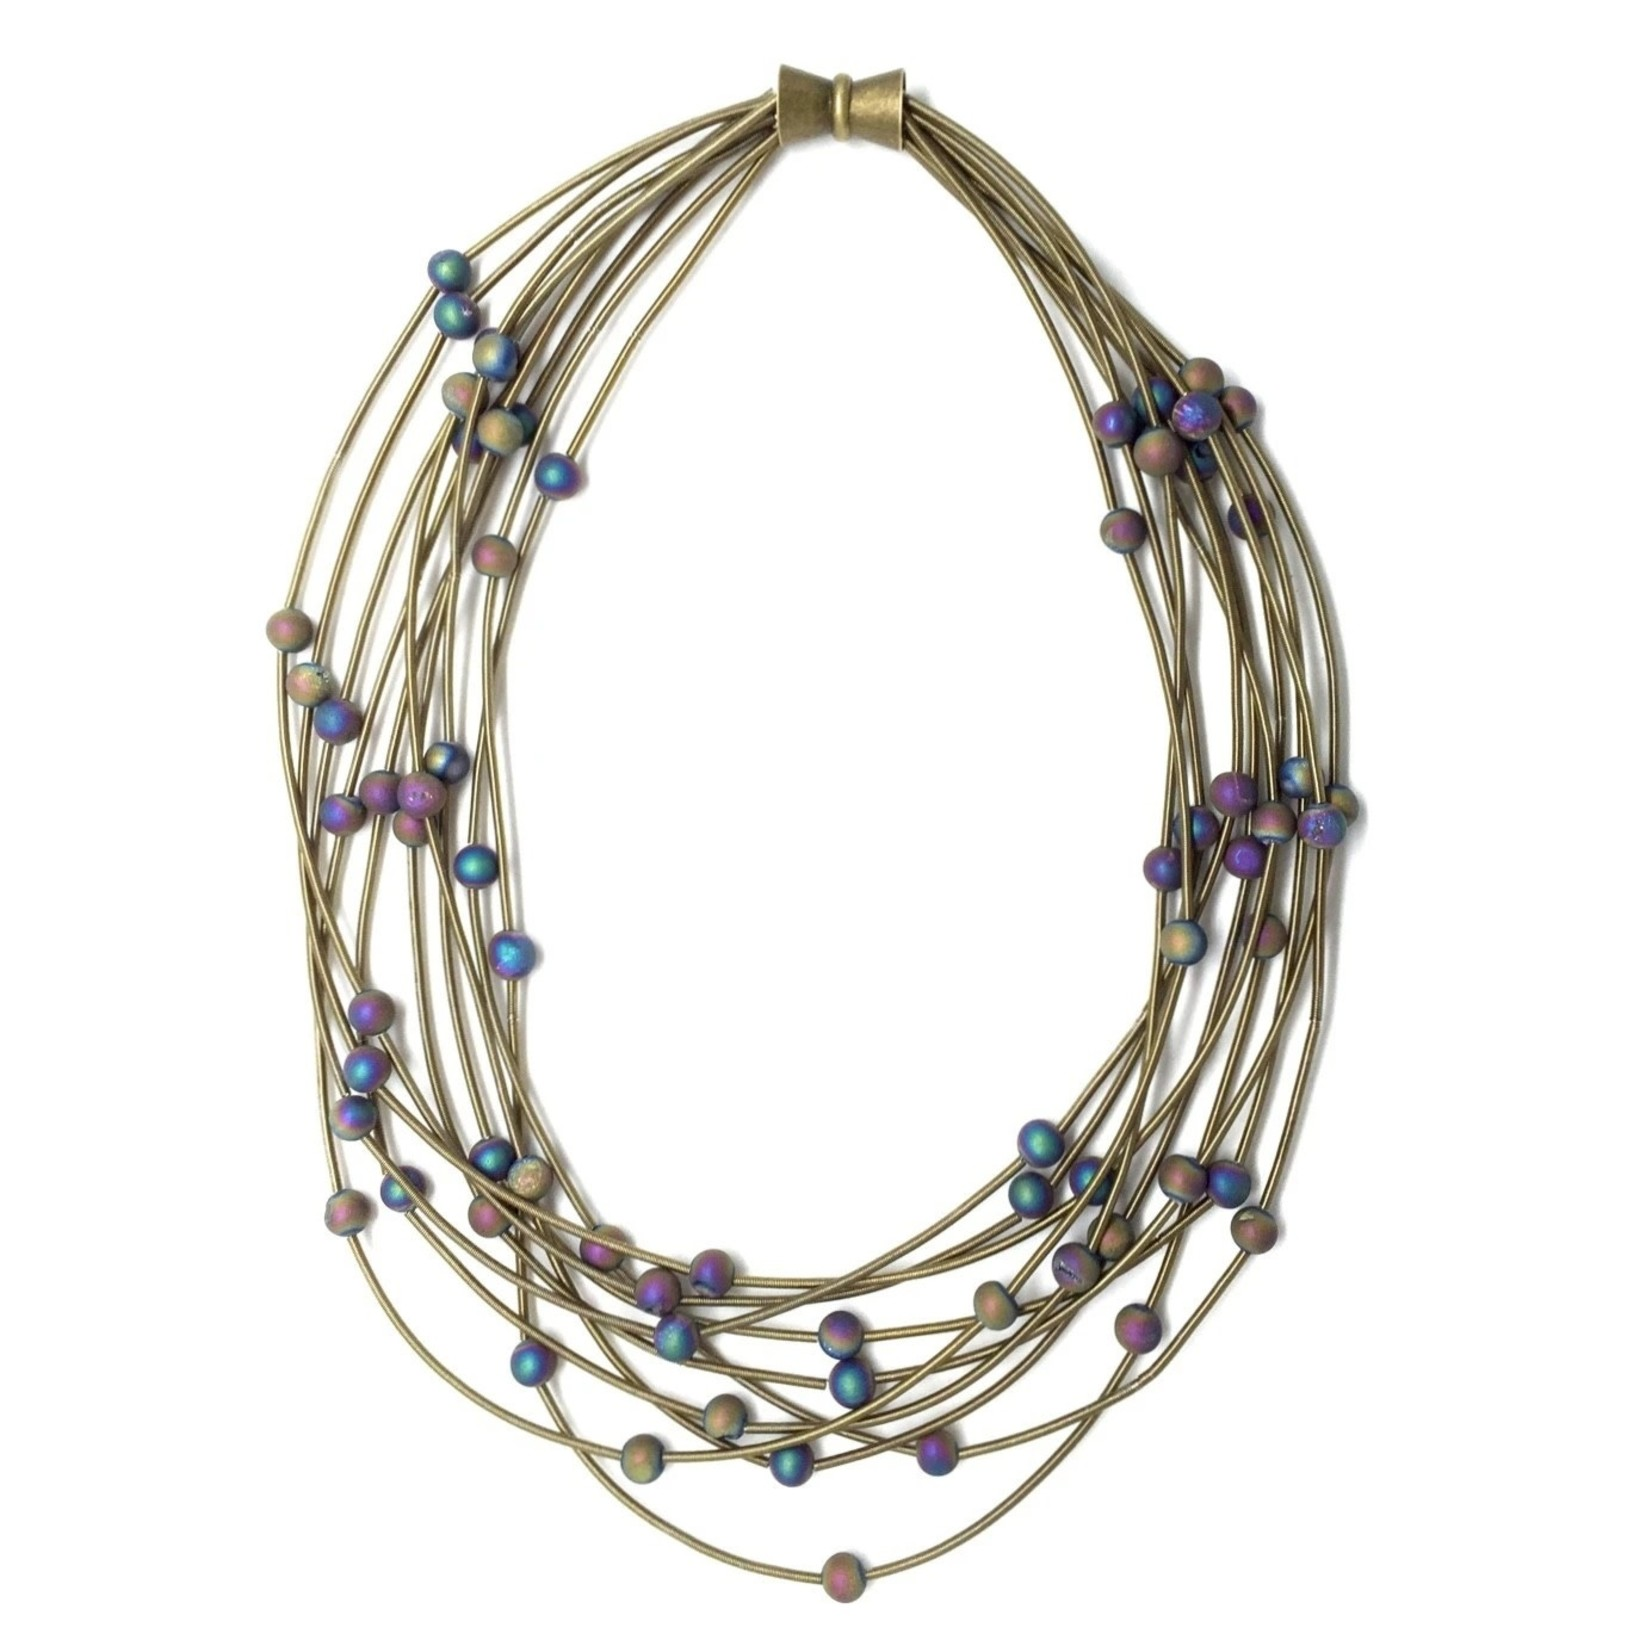 Sea Lily 10 Layer Bronze Necklace w/ Iridescent Geodes